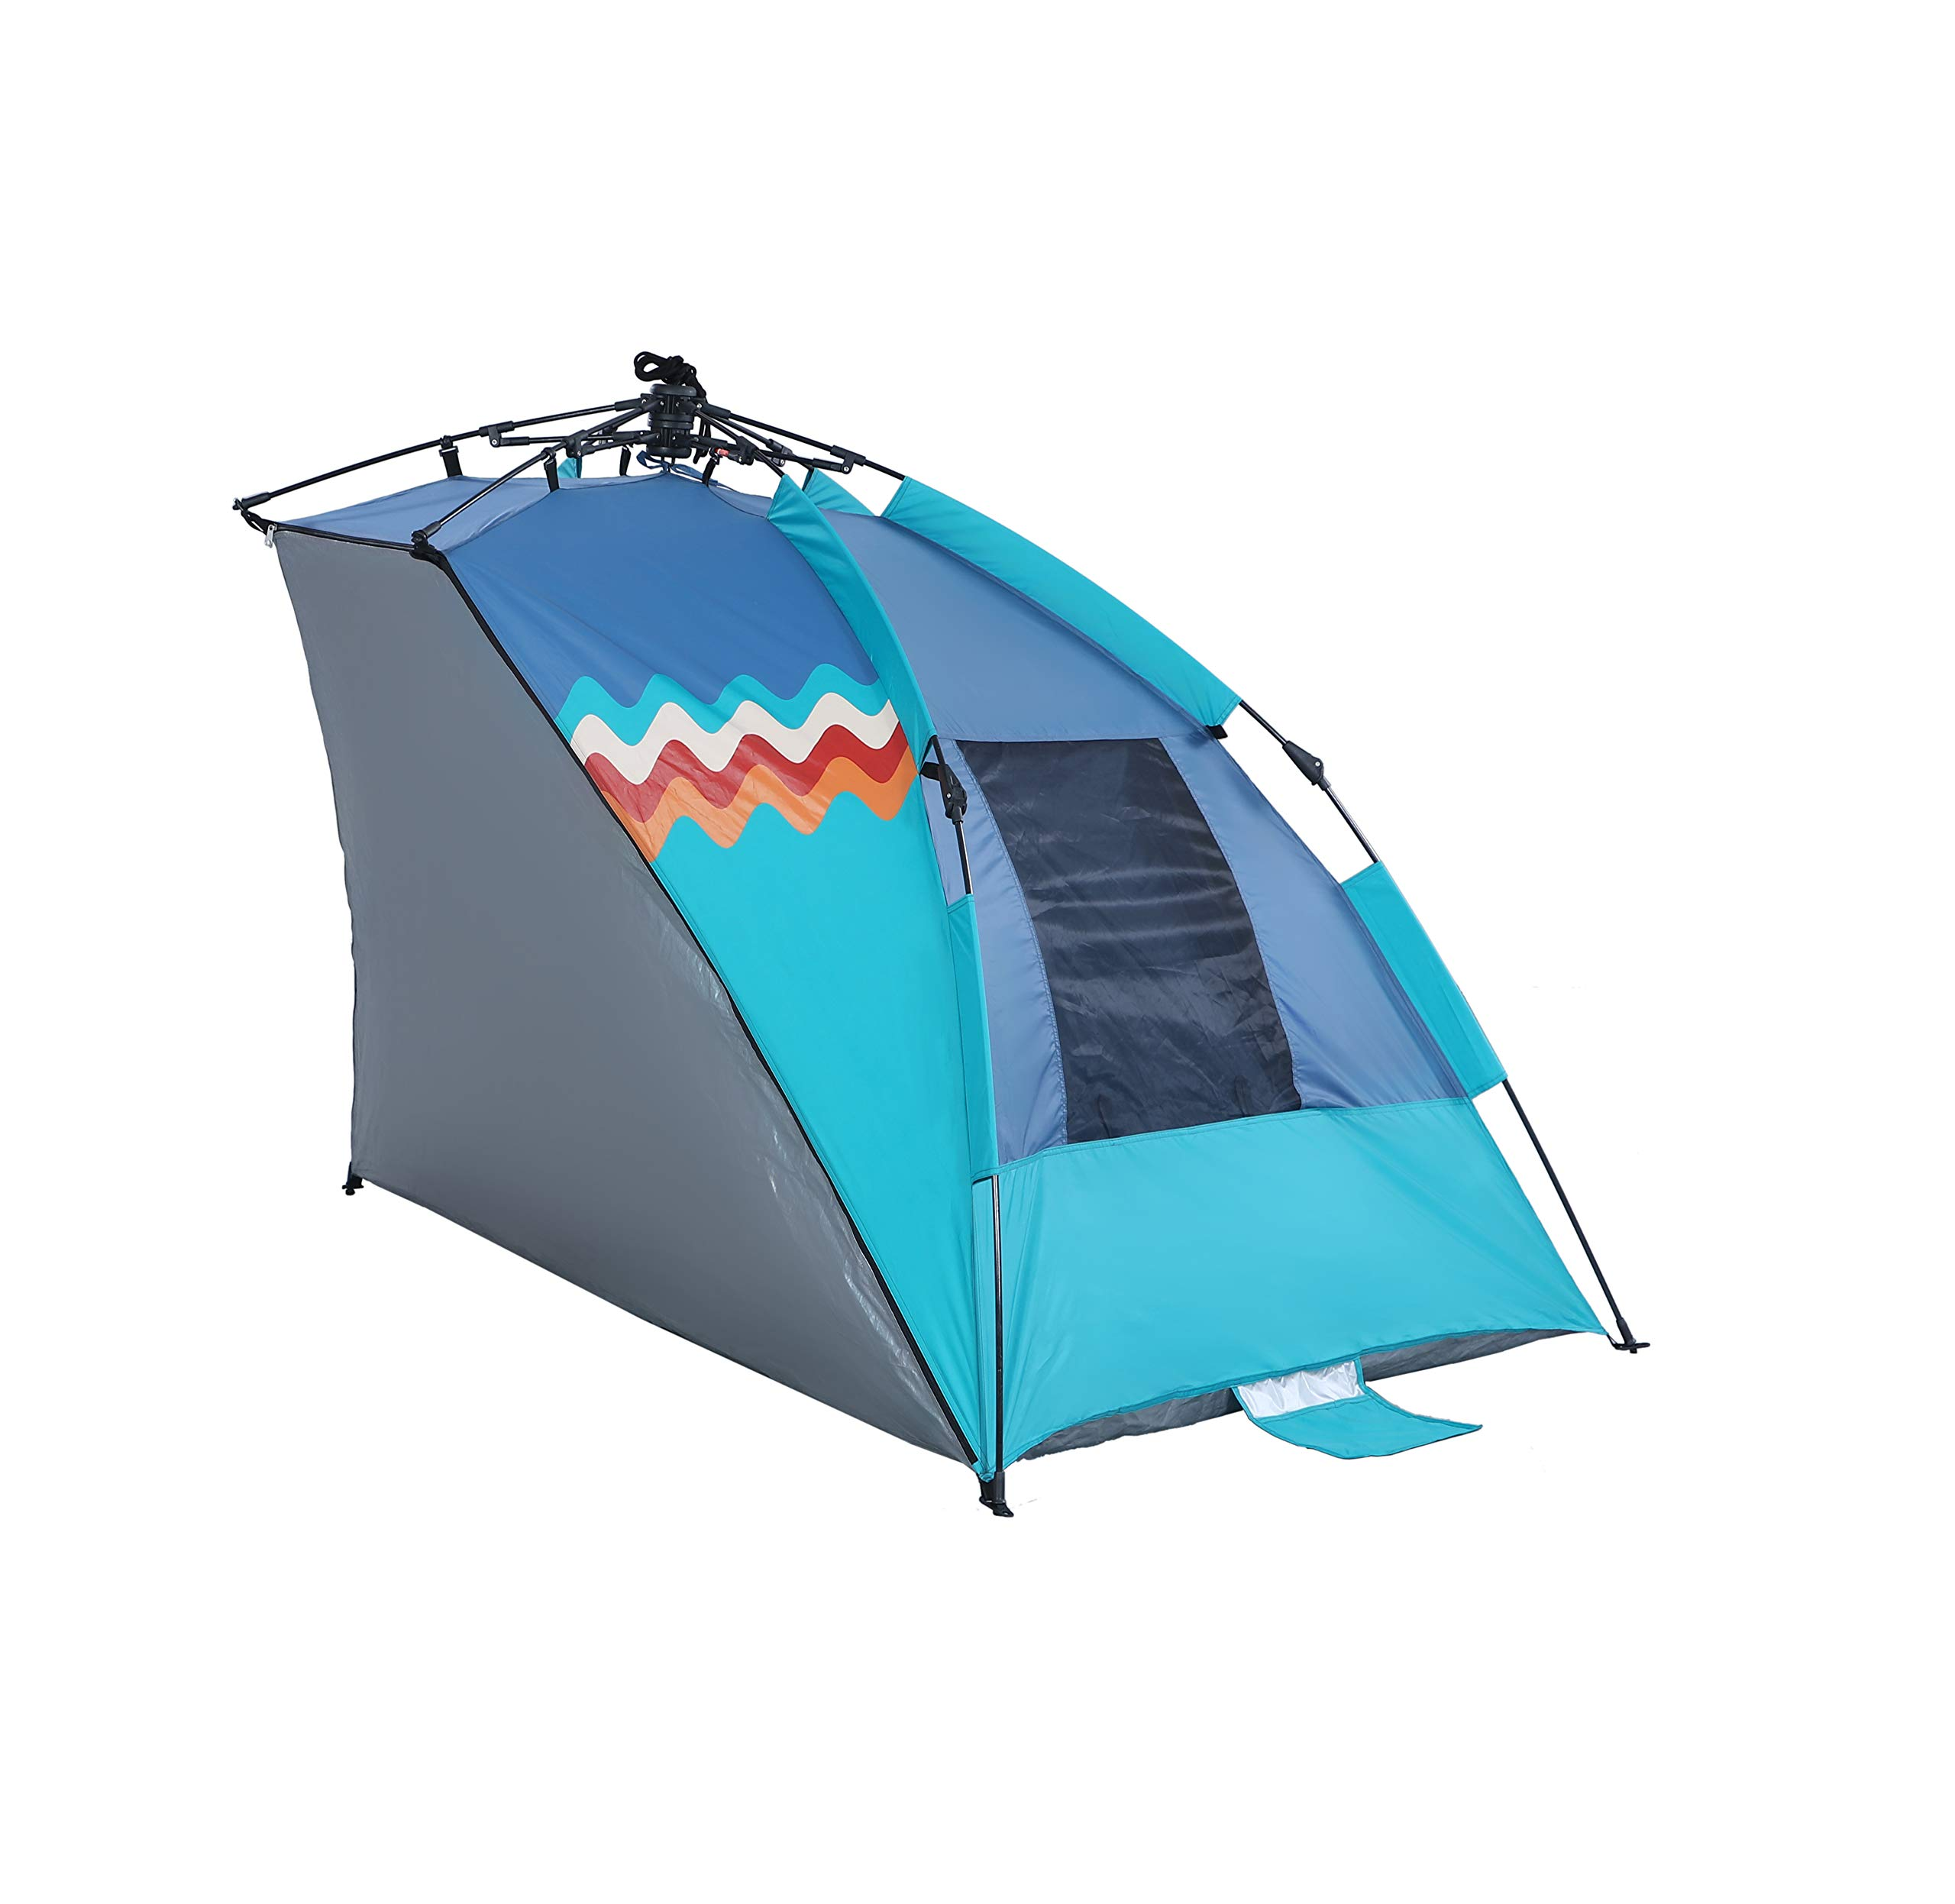 ALPHA CAMP & Hang Ten Cooperation Style Beach Tent Easy Instant Sun Shelter-Extended Zippered Porch Included by ALPHA CAMP